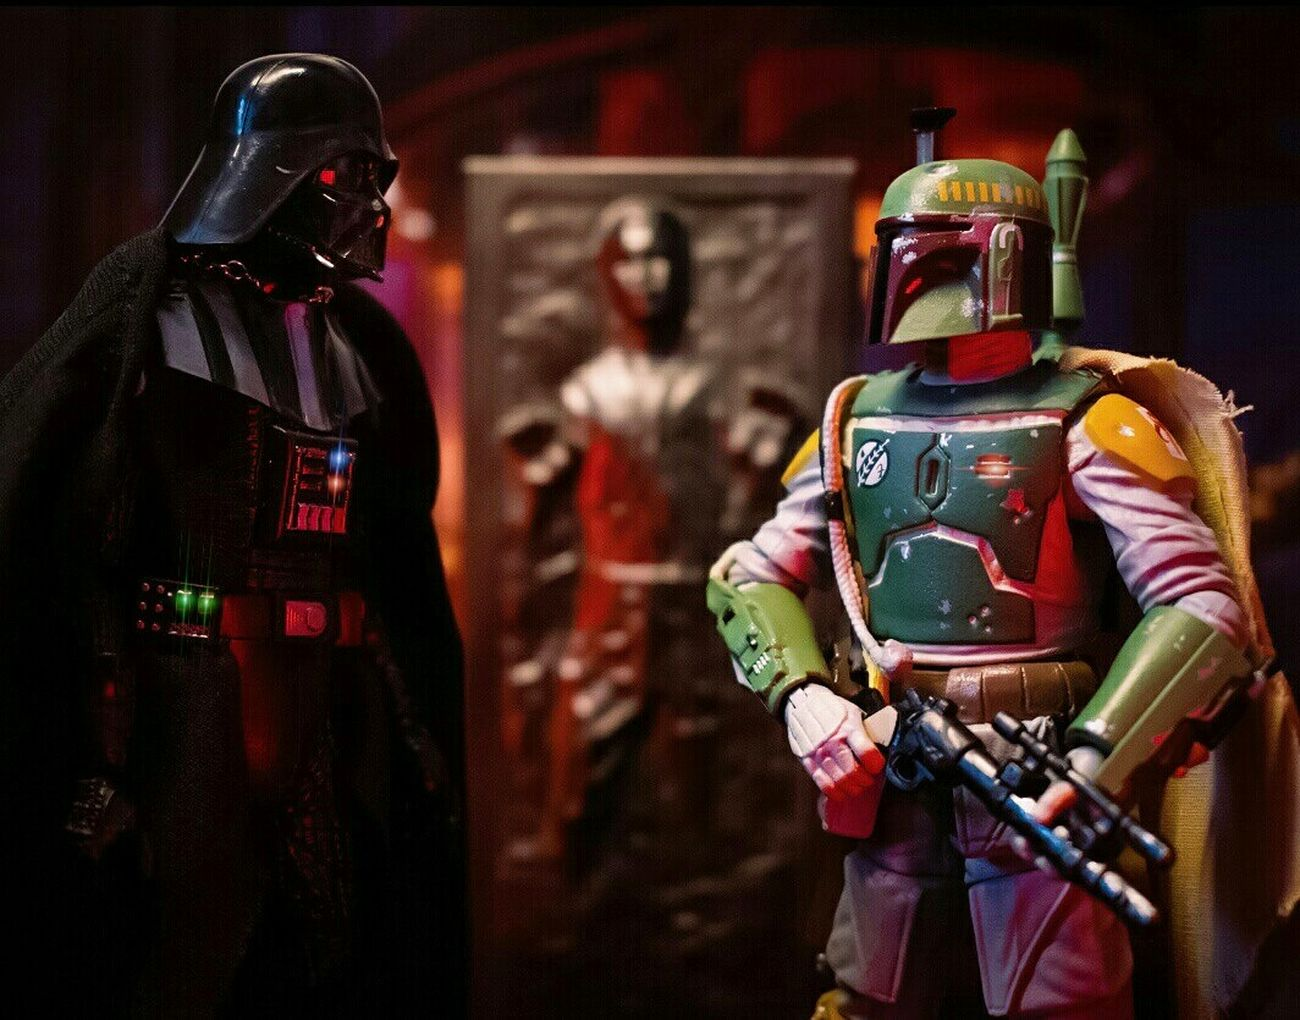 Starwarsblackseries Starwarsfigures Starwarsfigures Starwarstoys Starwarstoypix Starwarstoyfigs Starwarstoyphotography Starwarstoys Starwarstoypix Starwarsfigures Bobafett Toygroup_alliance Starwarstoys Toyunion Toyphotography Starwarsblackseries Starwarsblackseries6inch Starwarstoypix Starwarstoyphotography